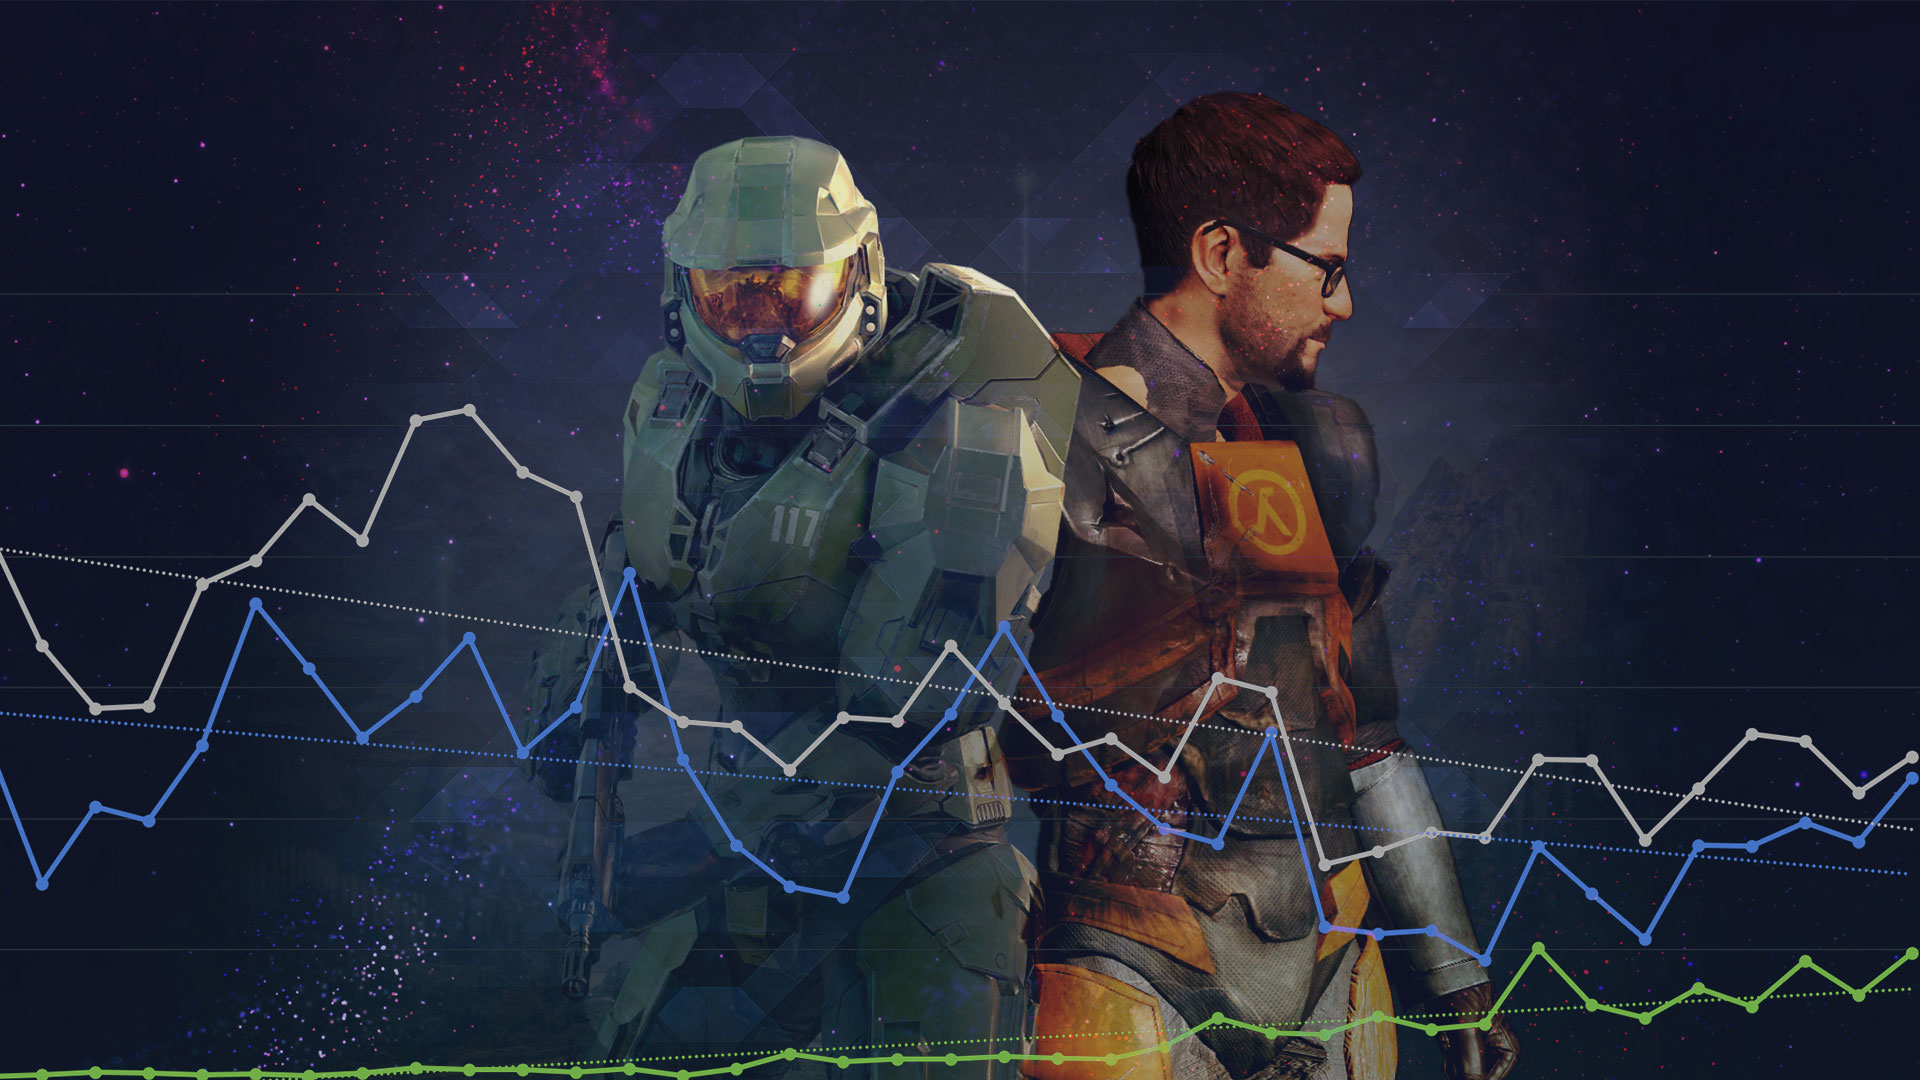 Game Pass for PC subscribers start playing more - even on their Steam accounts